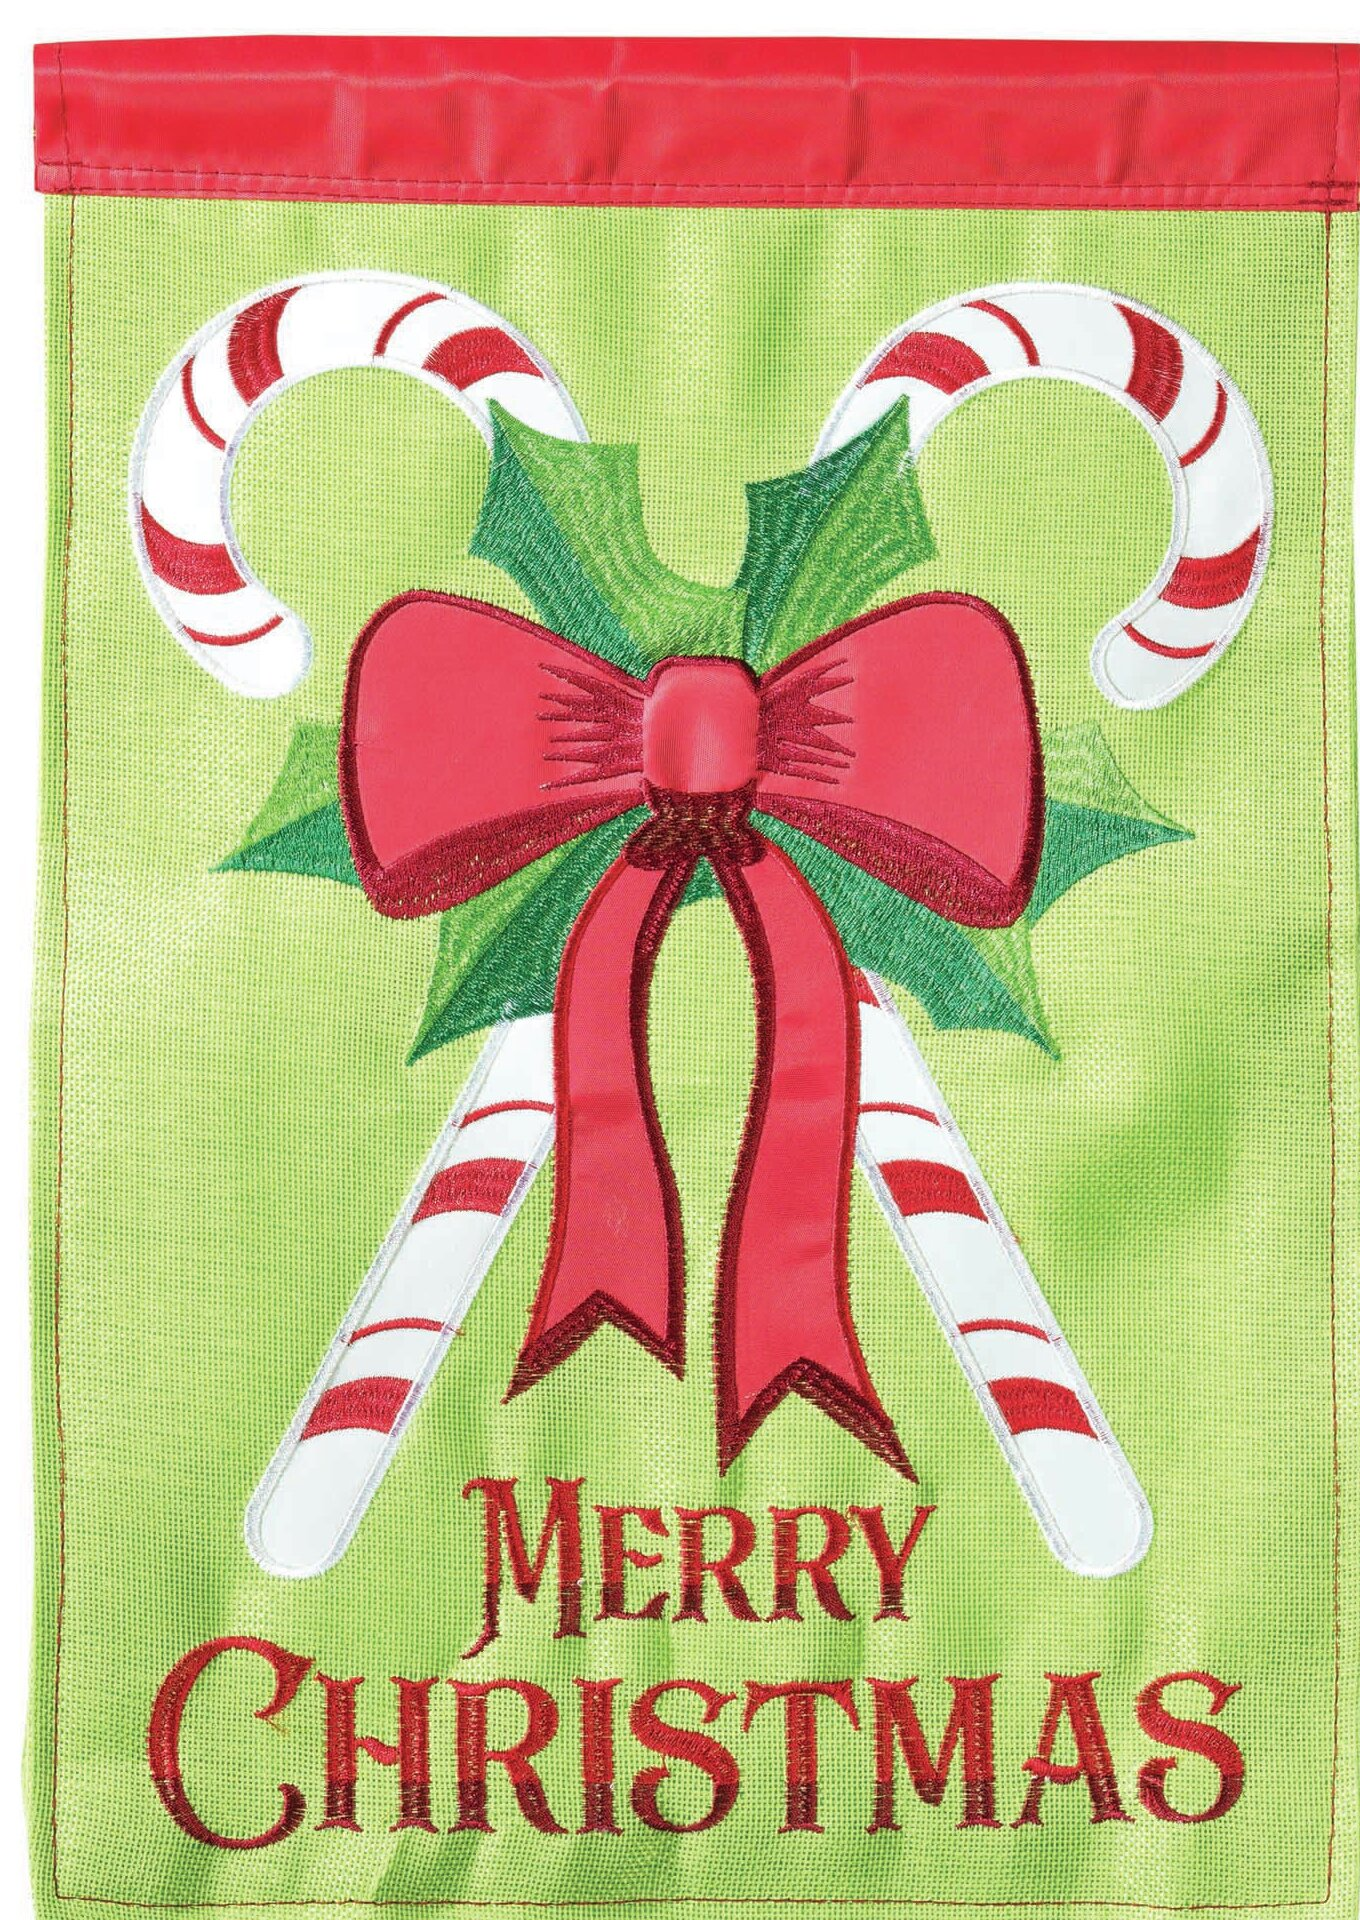 Merry Christmas Candy Cane 2 Sided Polyester 1 5 X 1 1 Ft Garden Flag